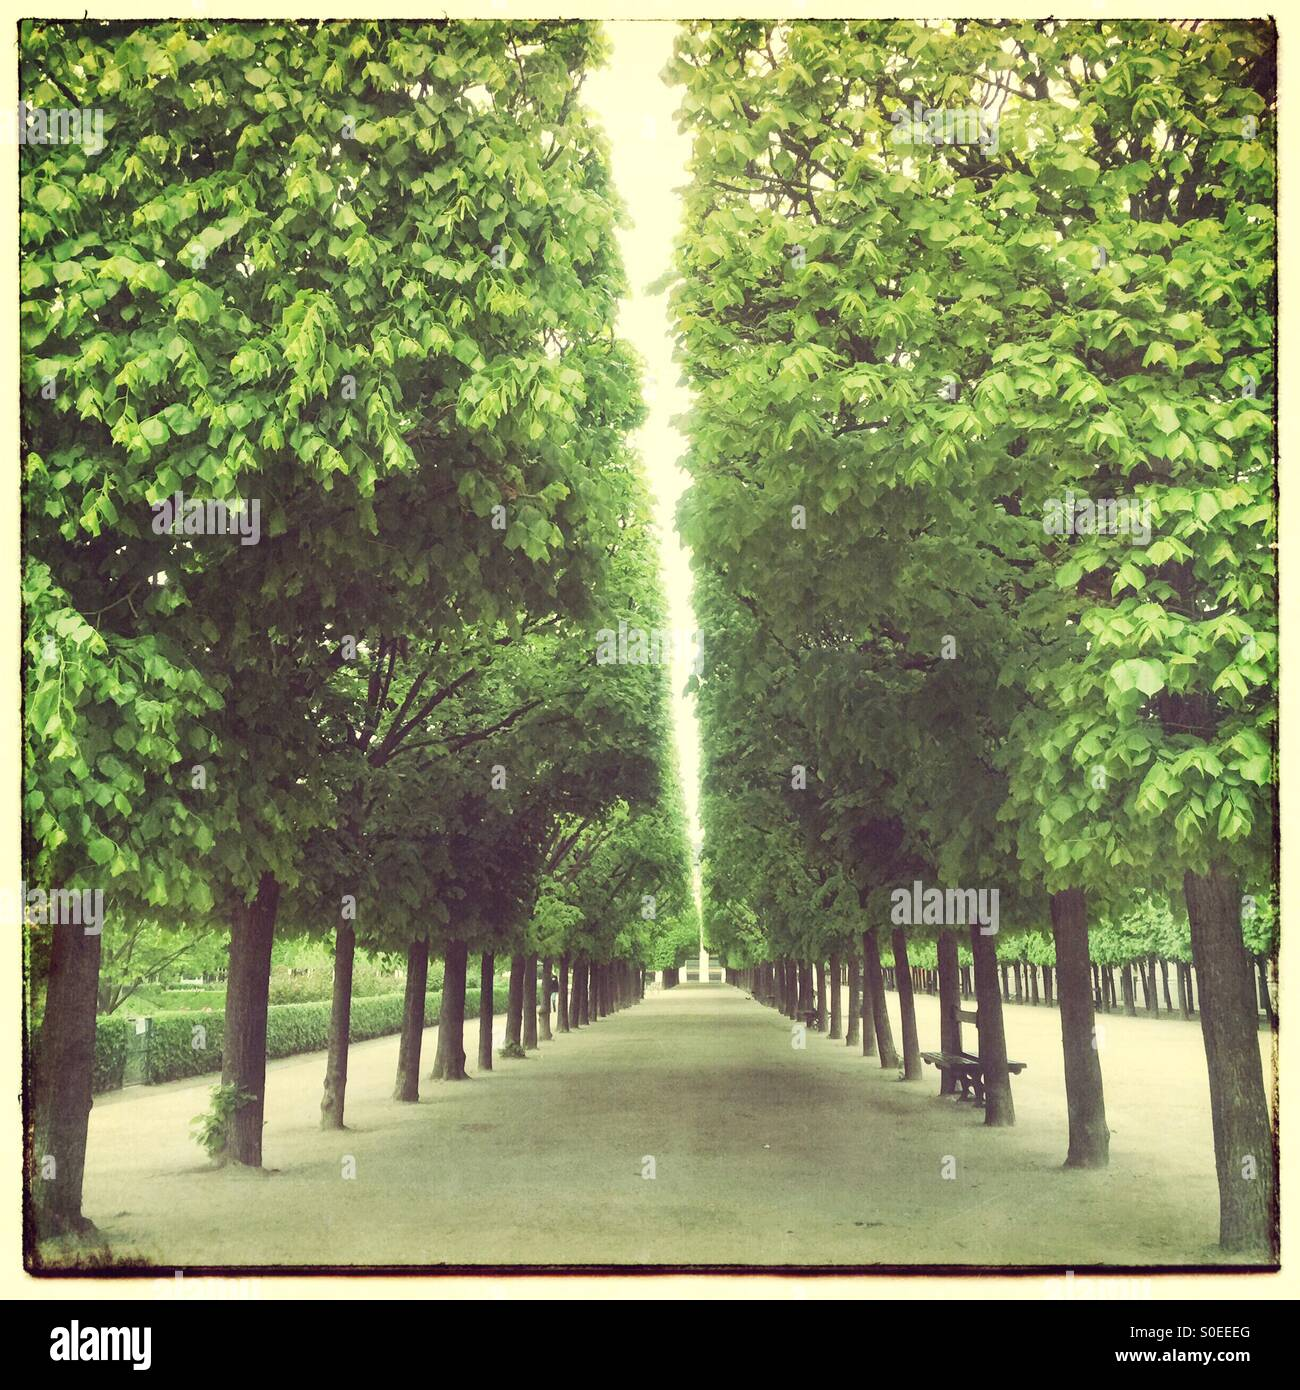 Rows of trees at Jardin du Palais-Royal in Paris, France. Vintage frame and warm, retro, faded look.Stock Photo